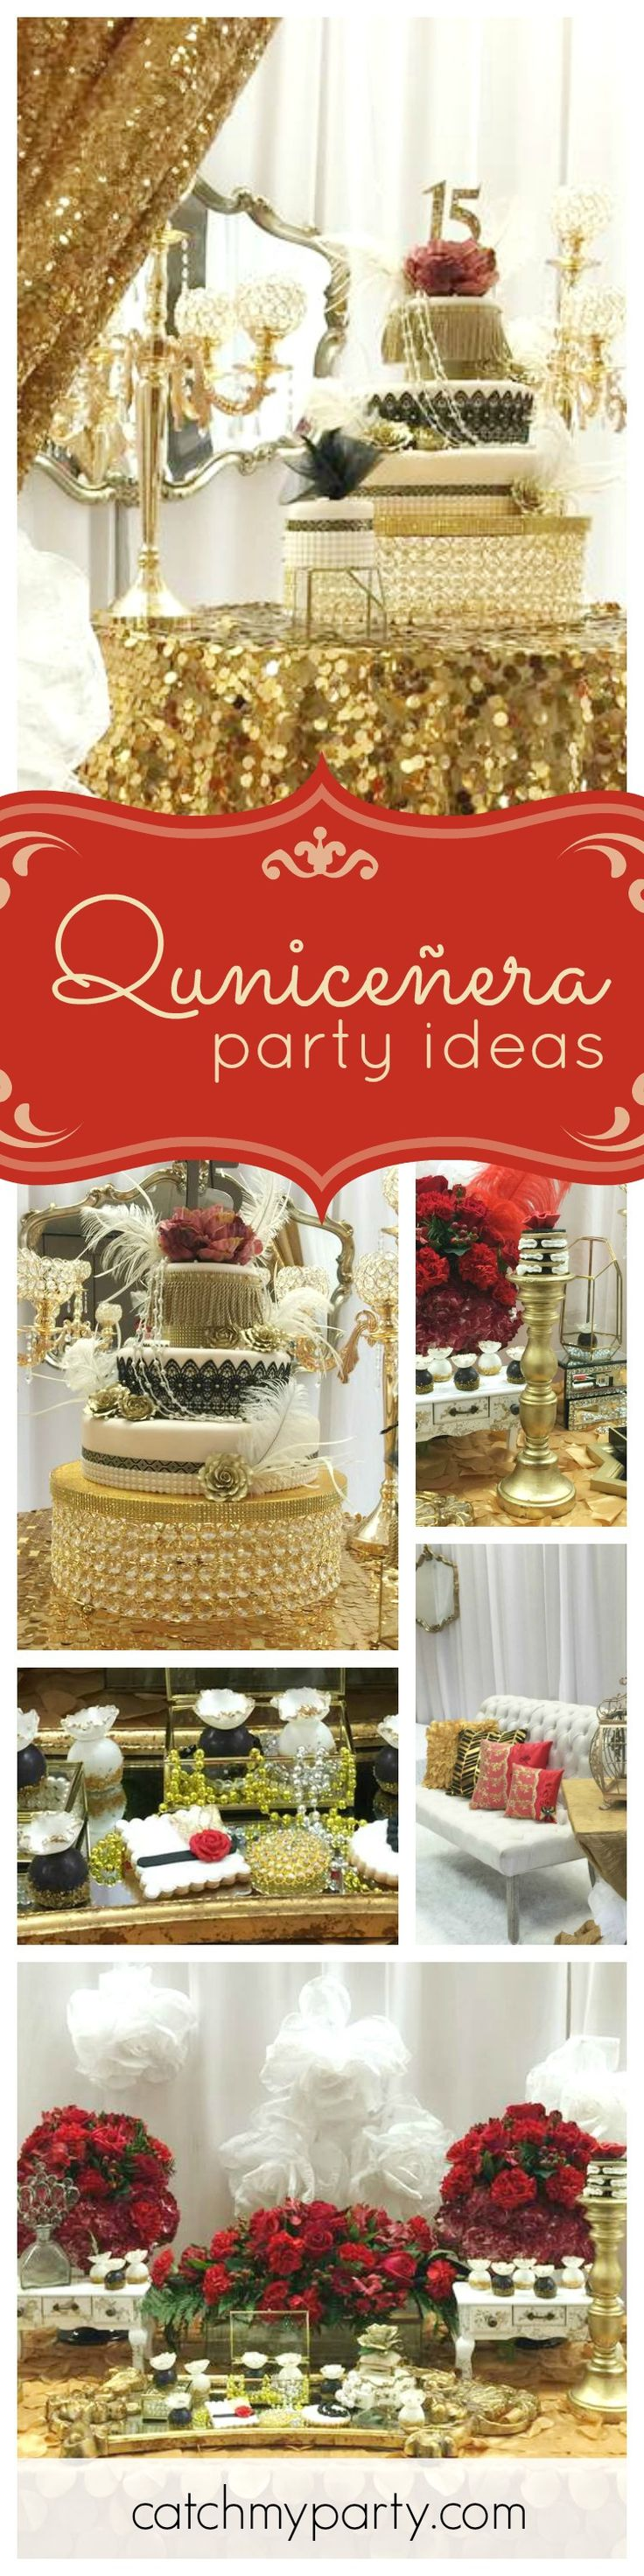 You don't want to miss this glamourous Great Gatsby inspired Quinceñera!! The birthday cake is spectacular!! See more party ideas and share yours at CatchMyParty.com